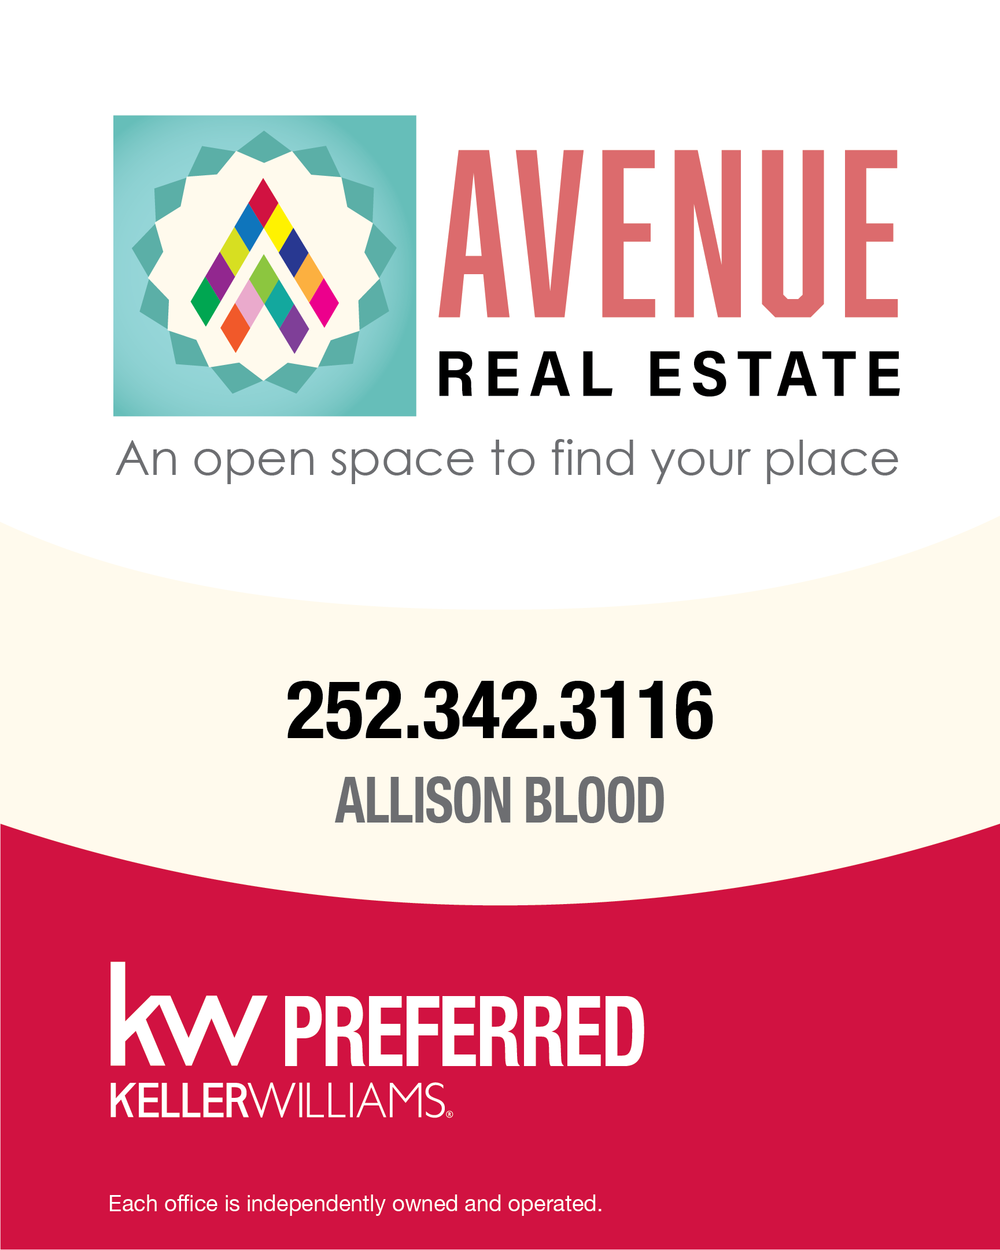 Avenue-YardSign-Draft-04-01.png